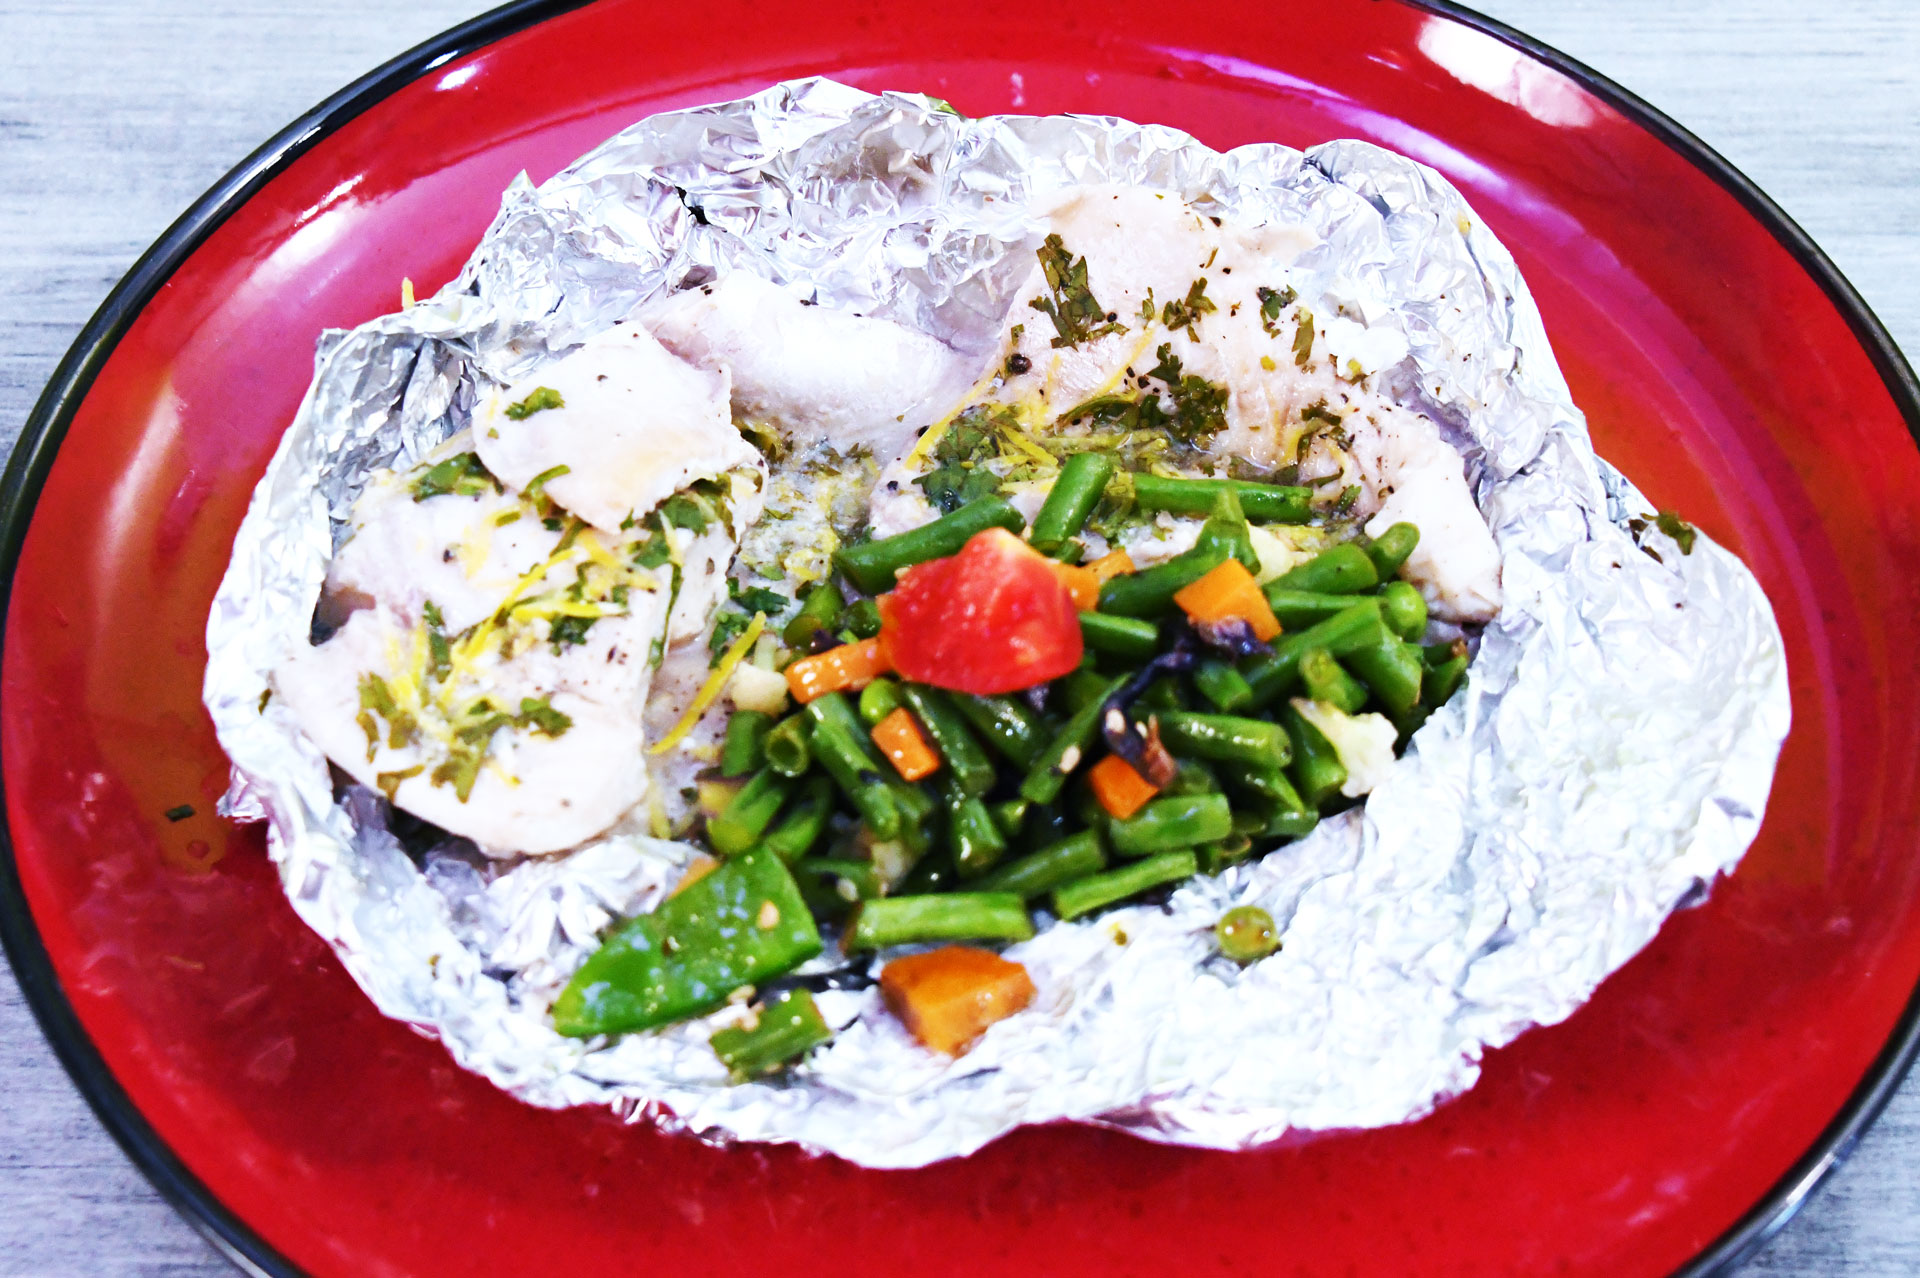 Healthy Steamed Fish and Veg